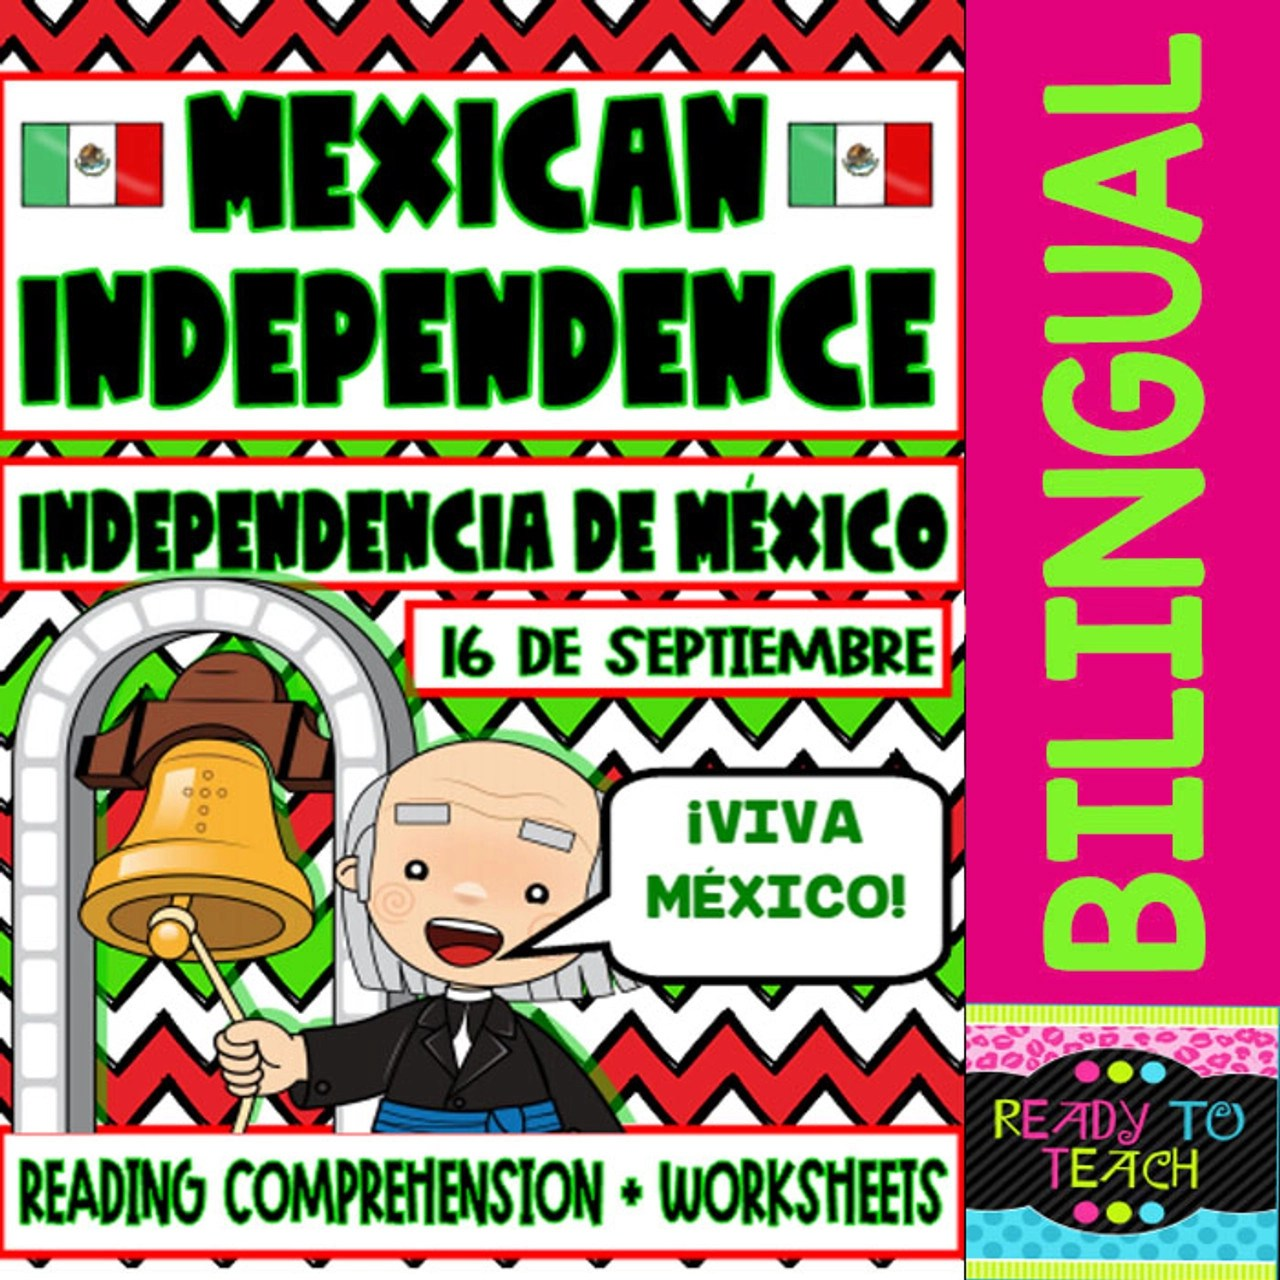 small resolution of Mexican Independence - Independencia de Mexico - Reading and Worksheets -  Bilingual - Amped Up Learning